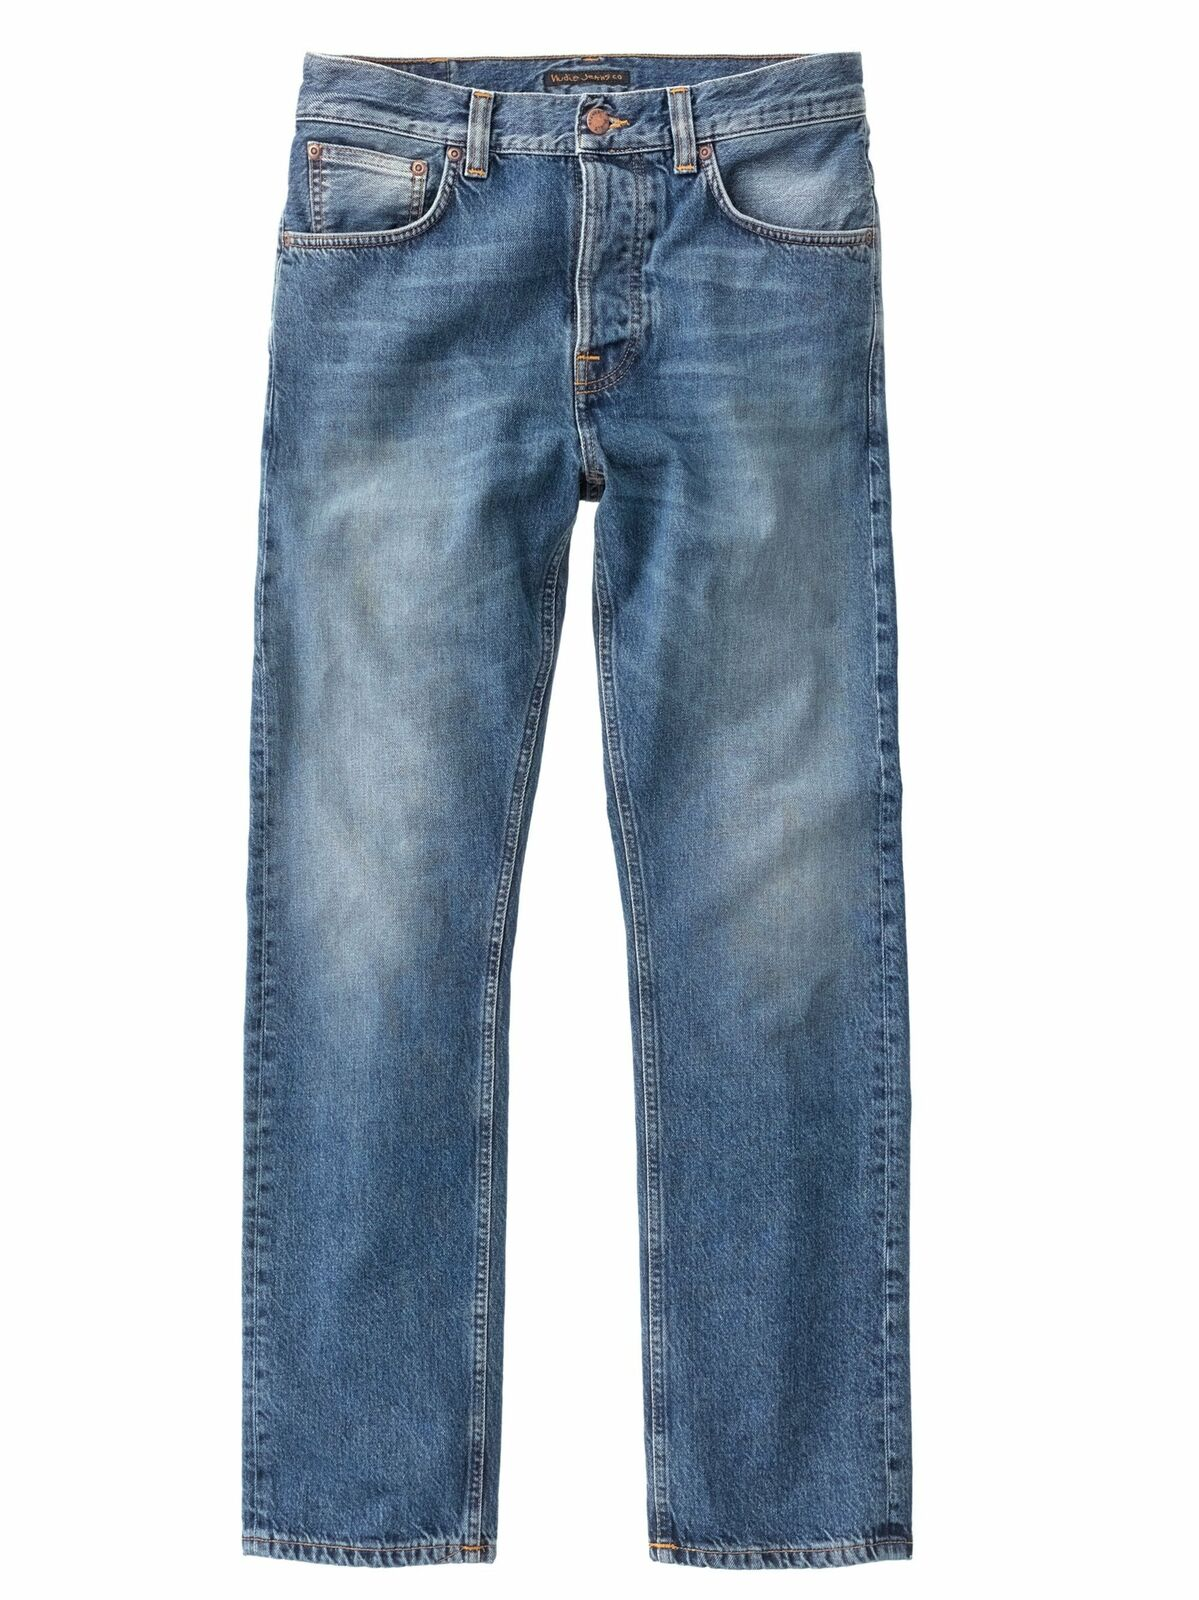 Nudie Jeans Sleepy Sixteen Celestial orange Jean